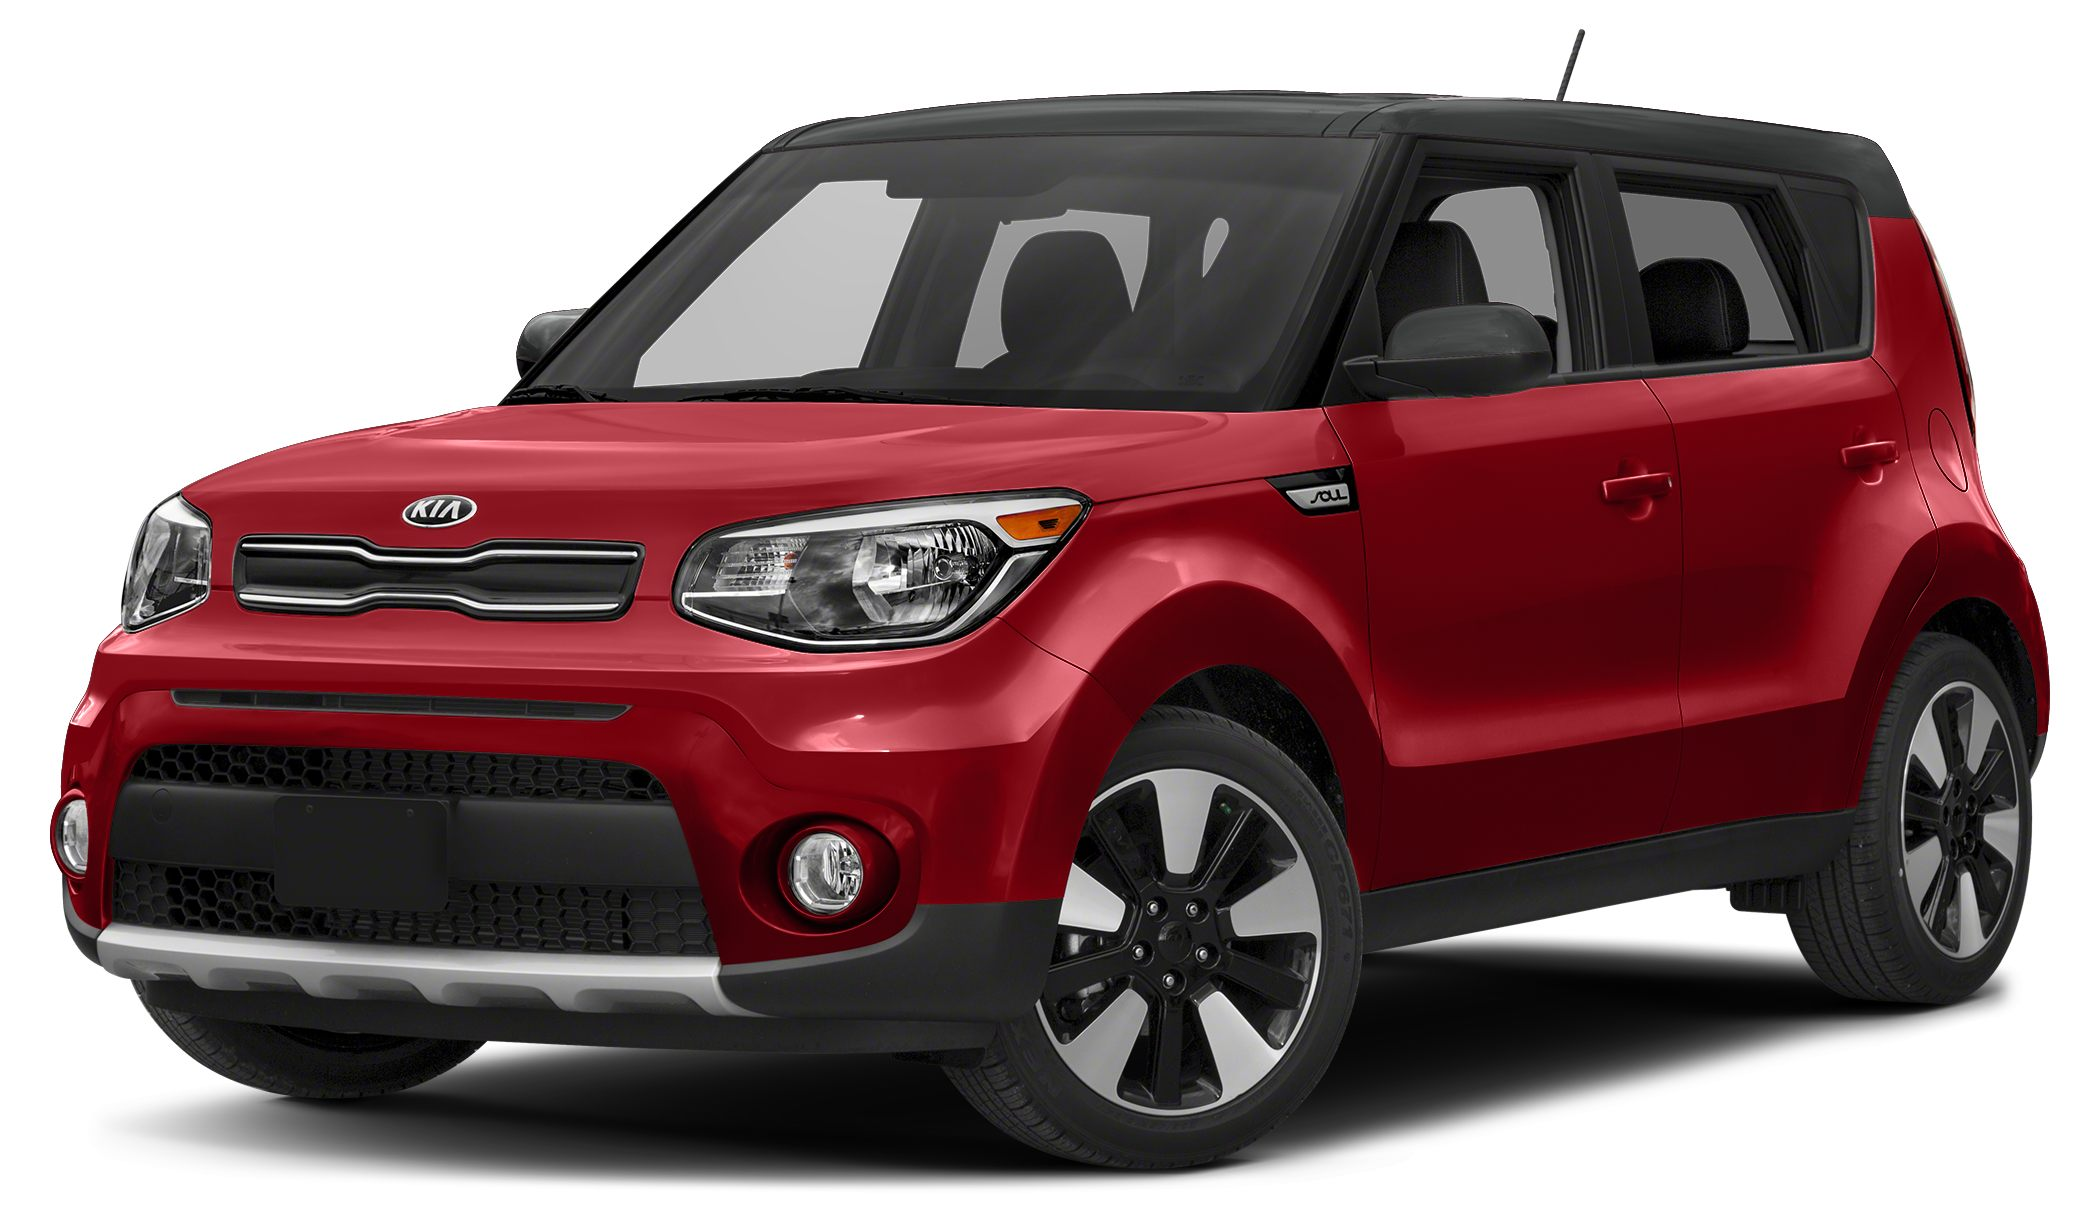 2018 Kia Soul  Miles 25Color Inferno Red  Black Roof Stock K8564 VIN KNDJP3A57J7563552